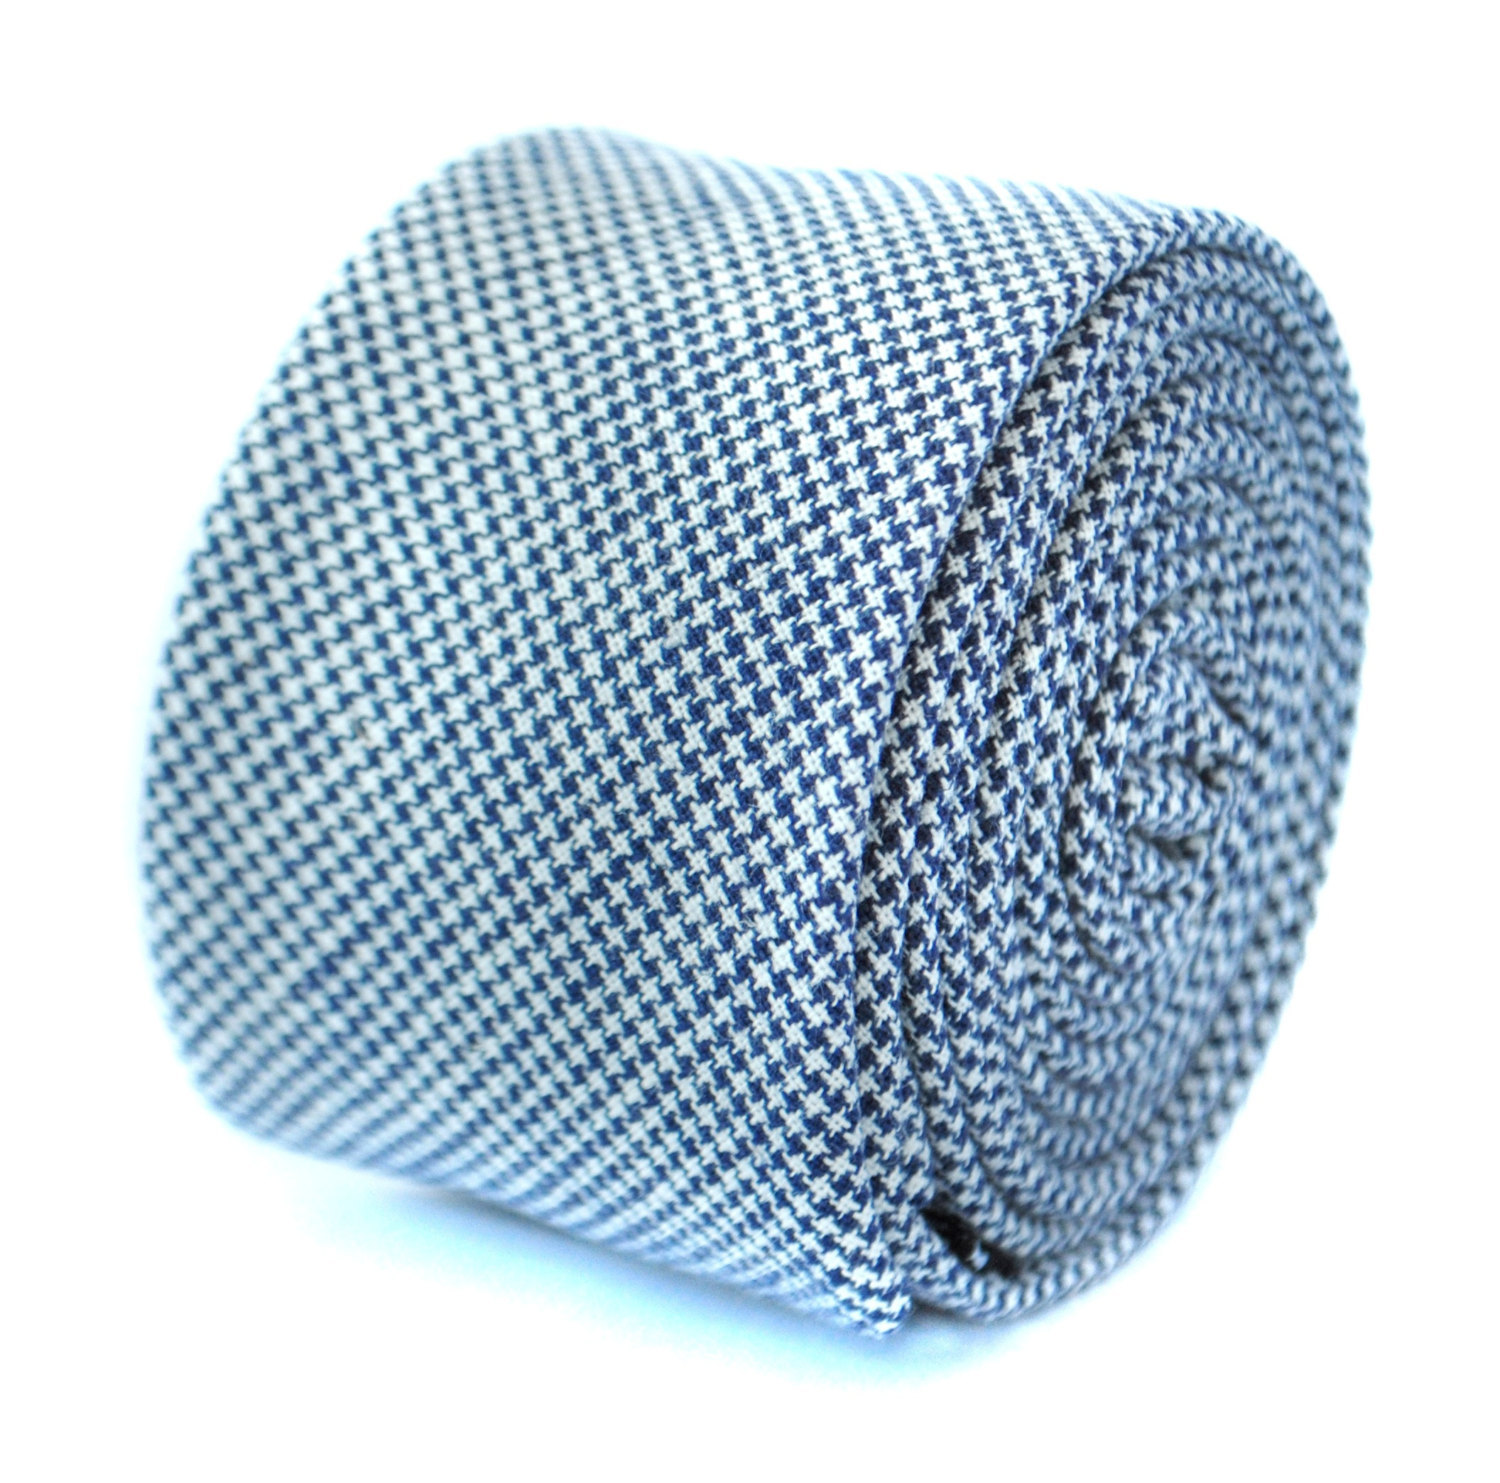 skinny navy and white dogstooth checked cotton tie by Frederick Thomas FT1958